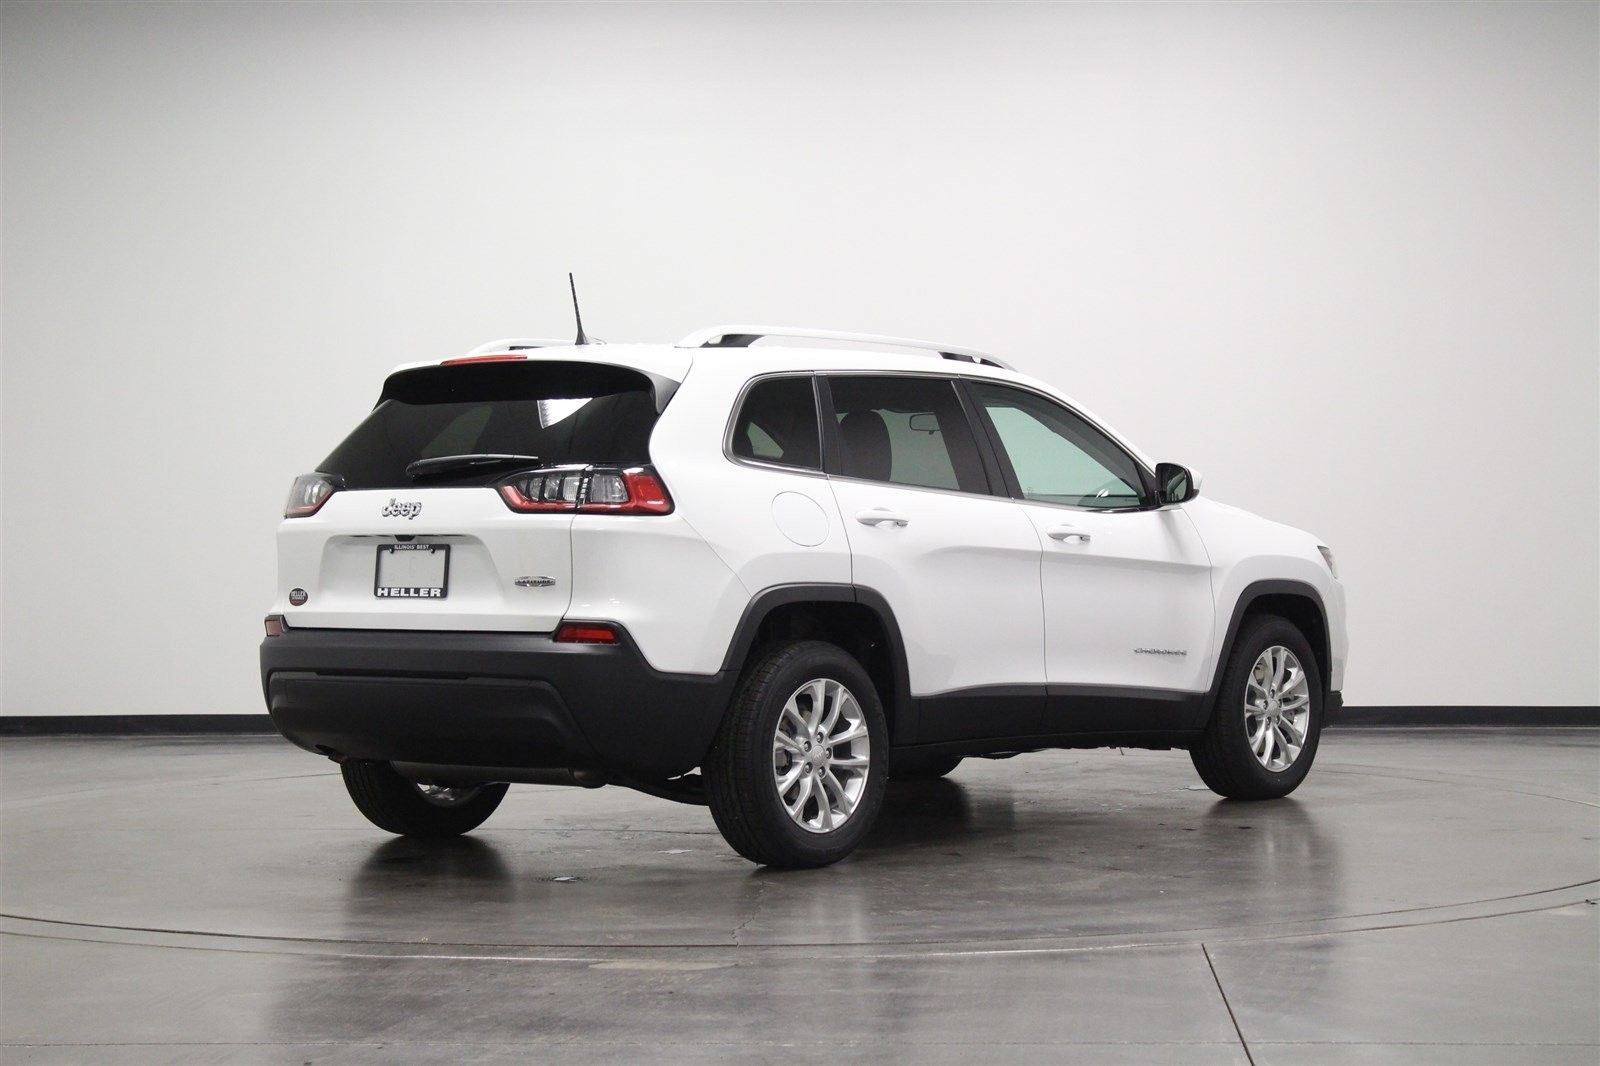 Jeep Cherokee Sport 2019 Price (With images) Jeep